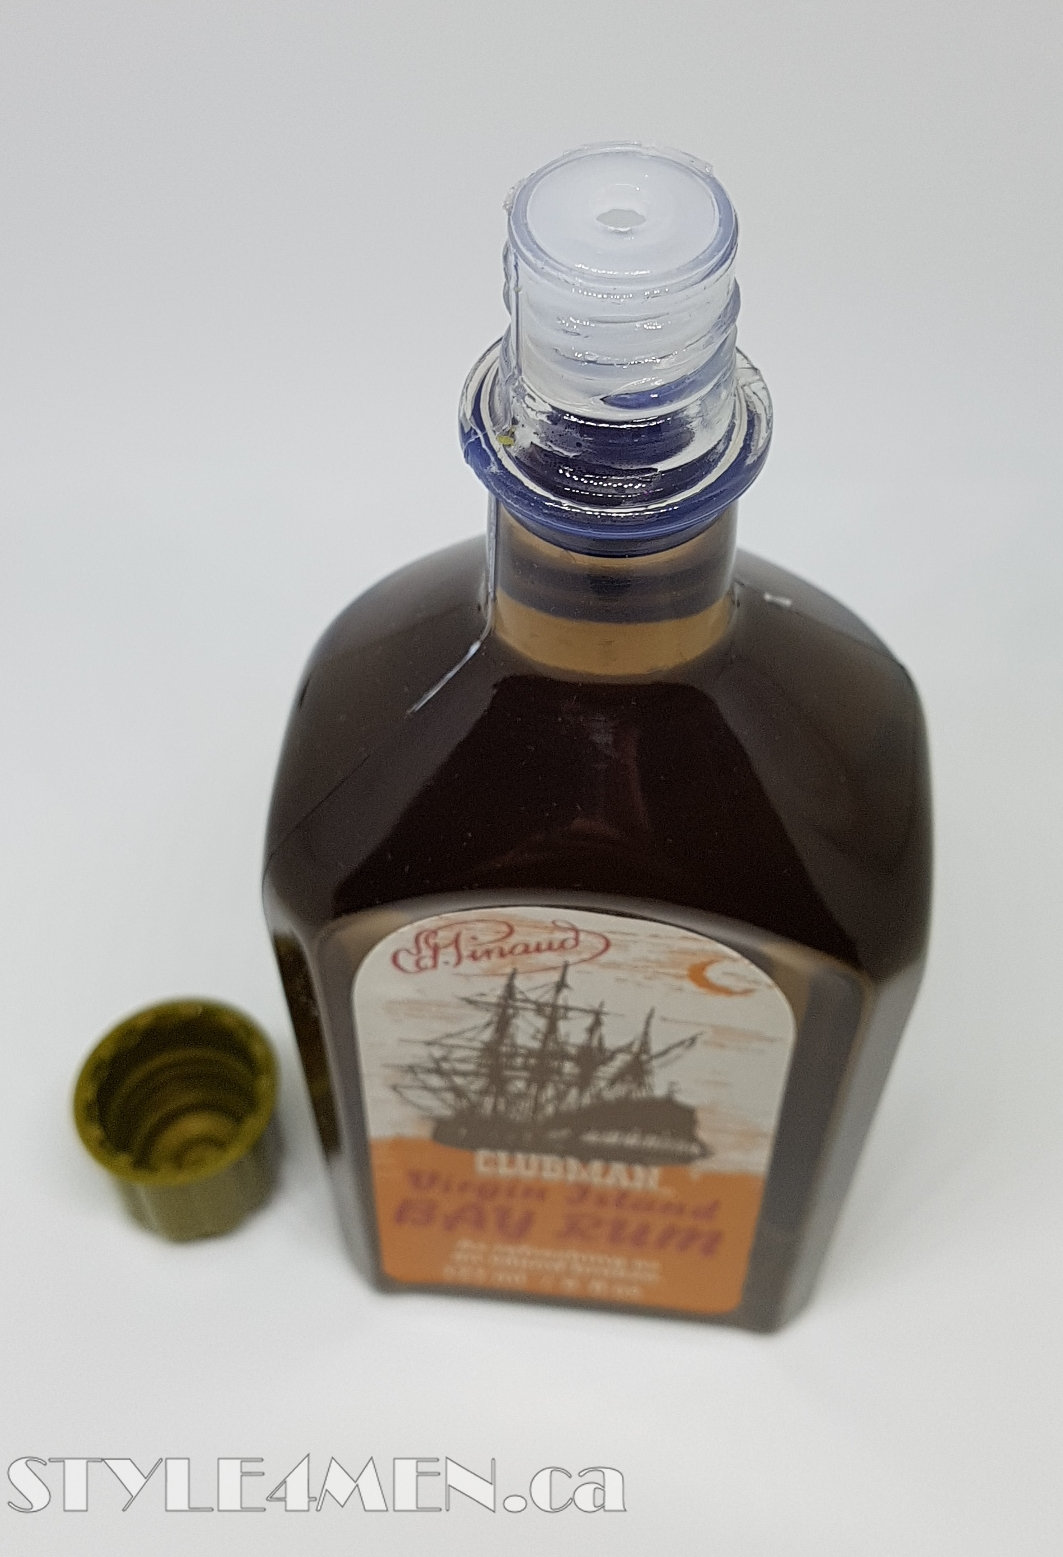 Pinaud-Clubman Bay Rum After-Shave